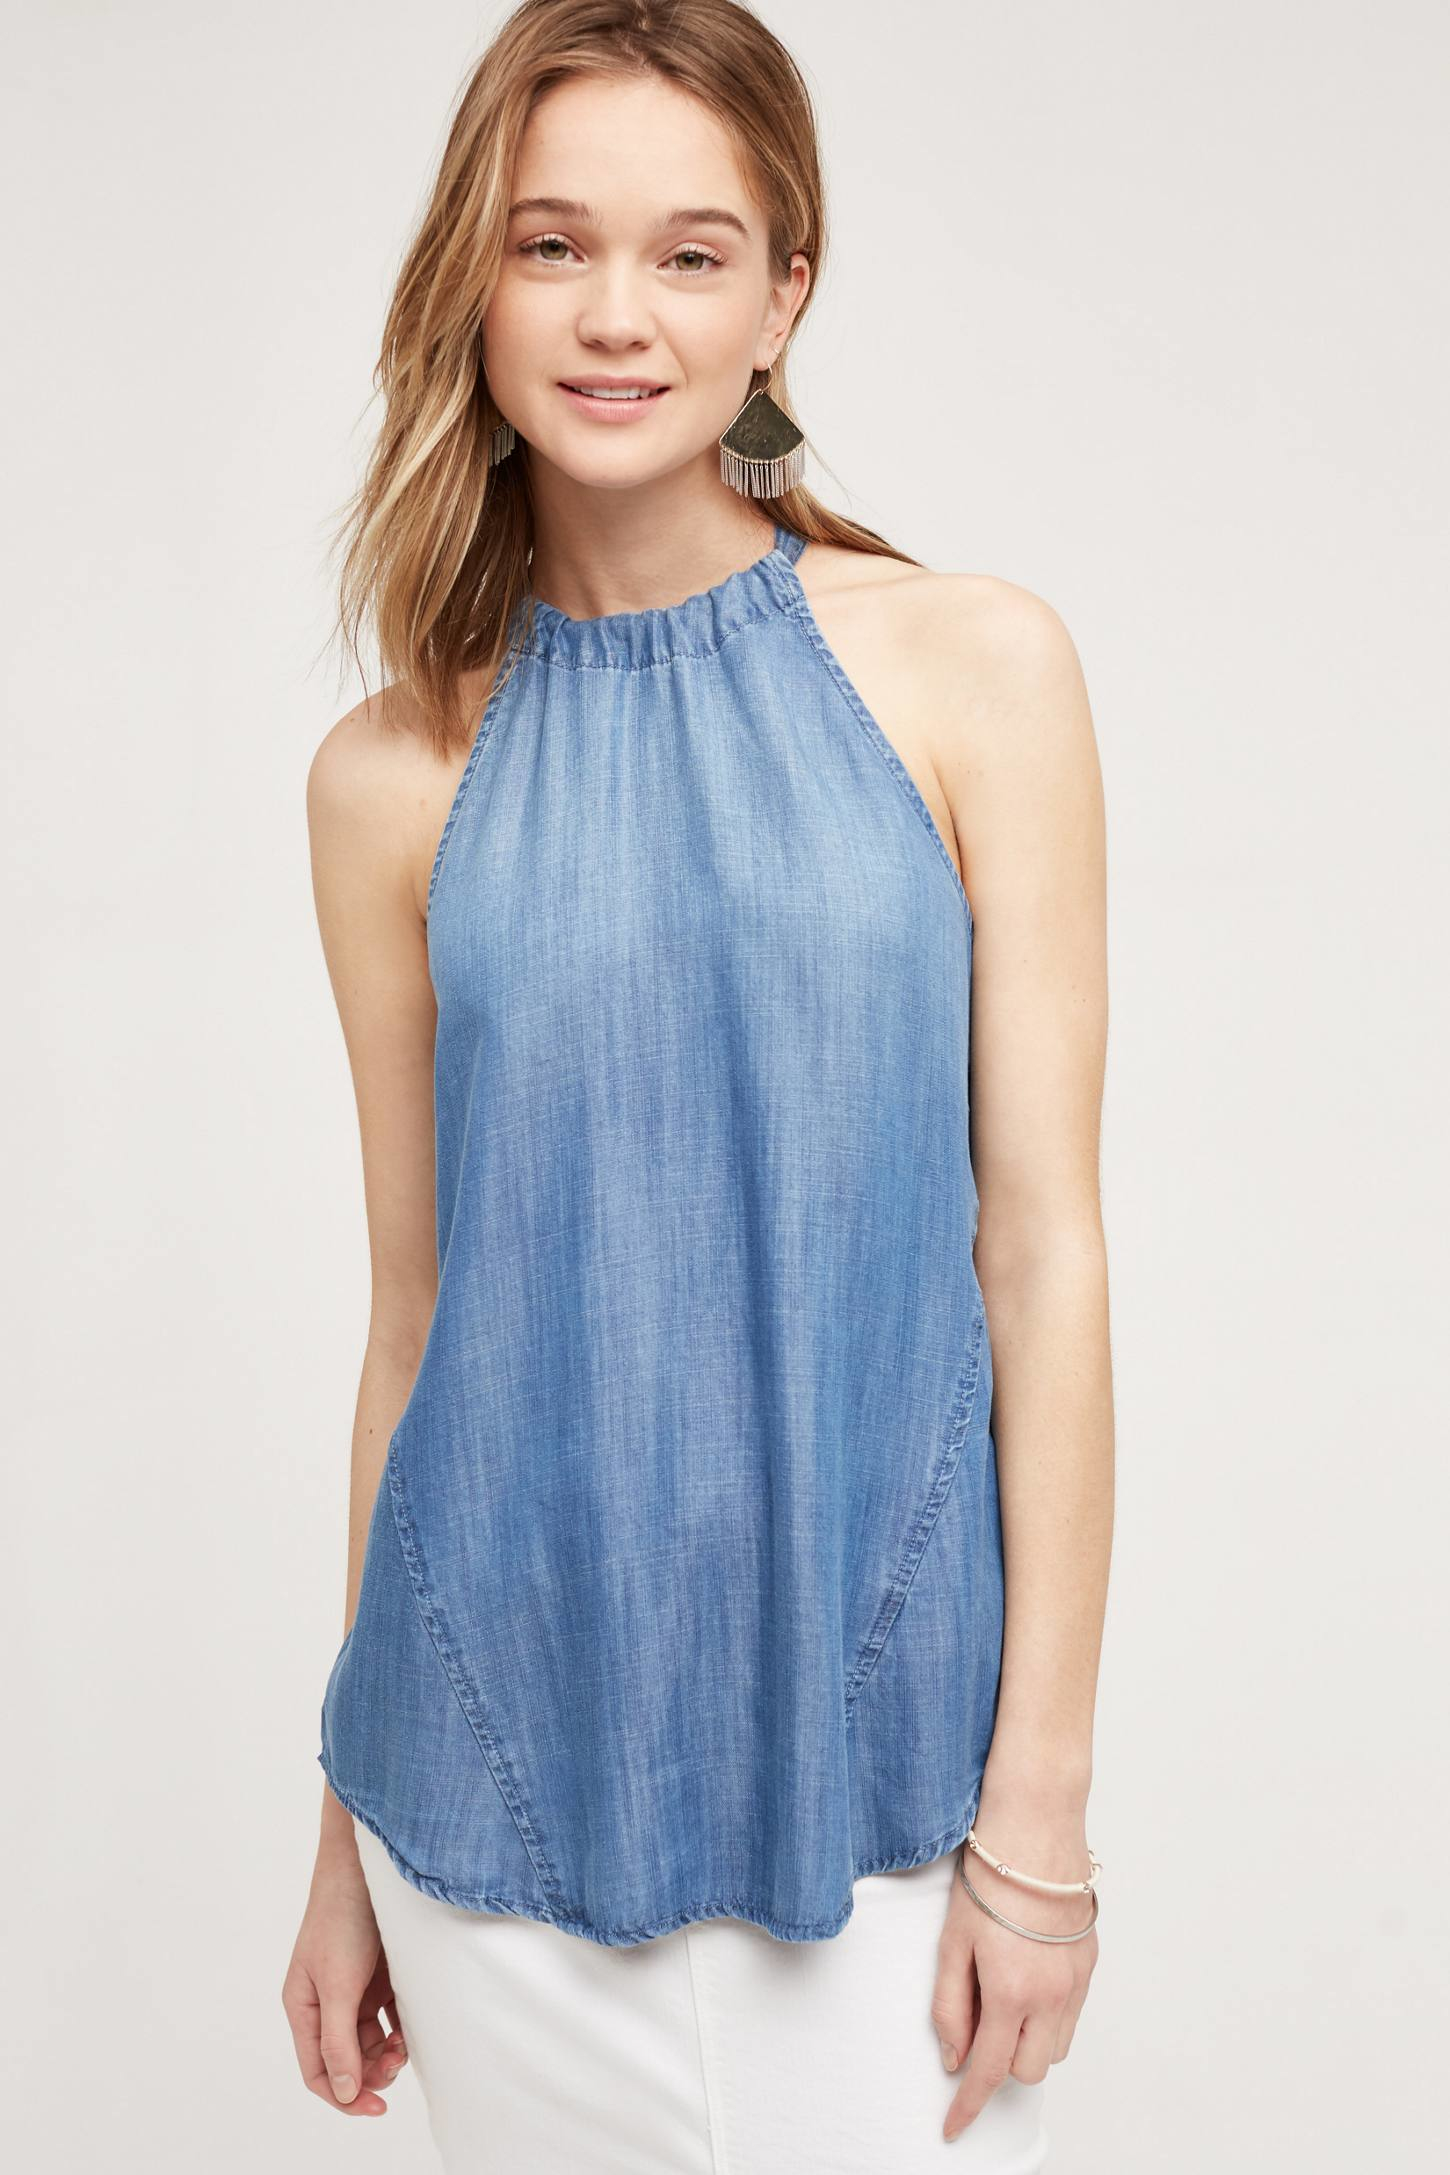 Cloth u0026 stone Chambray Halter Top in Blue | Lyst